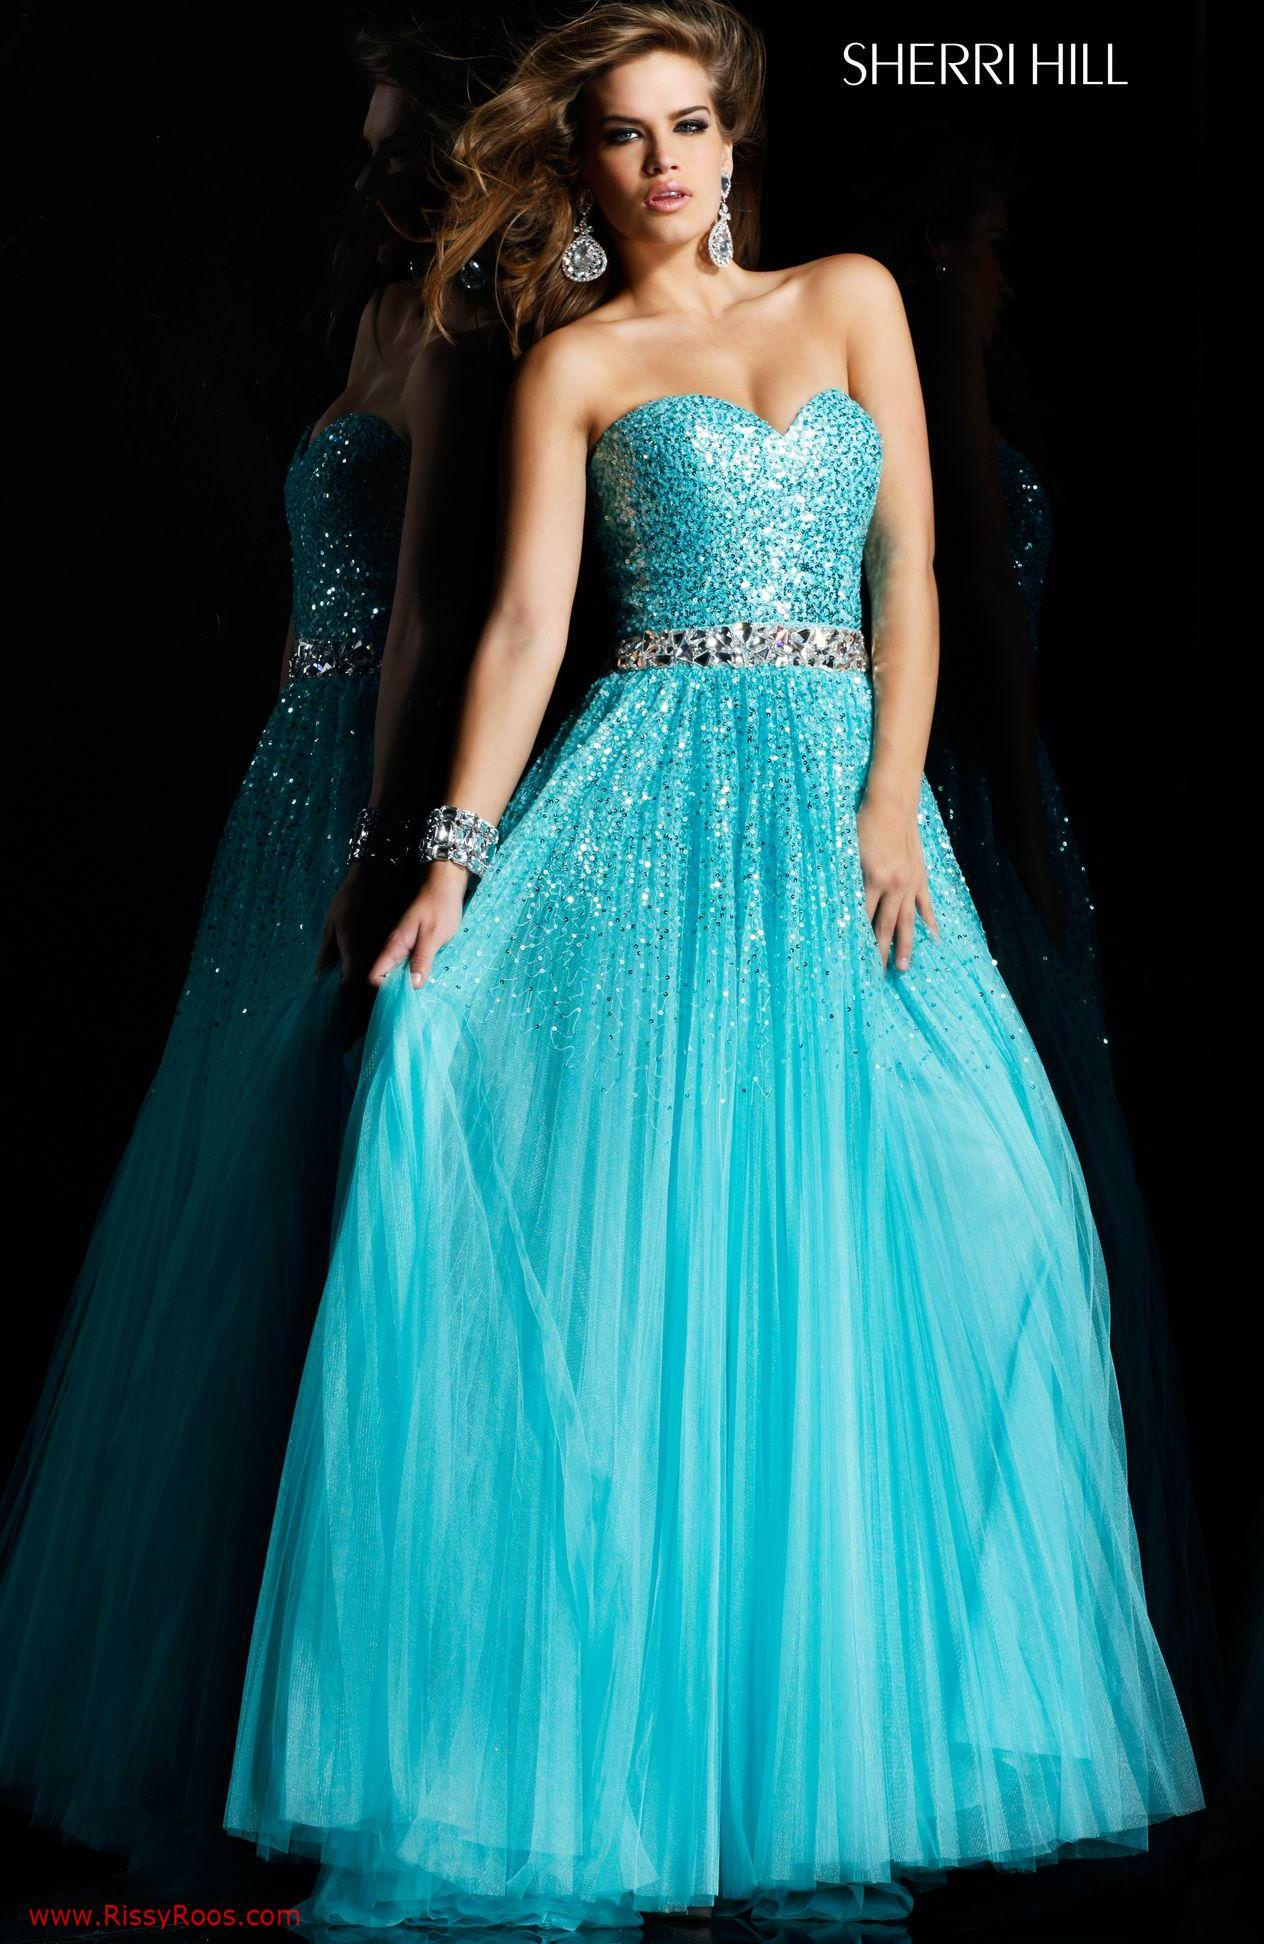 Hill 2545 - Aqua Prom Dress, Strapless Dresses - RissyRoos.com